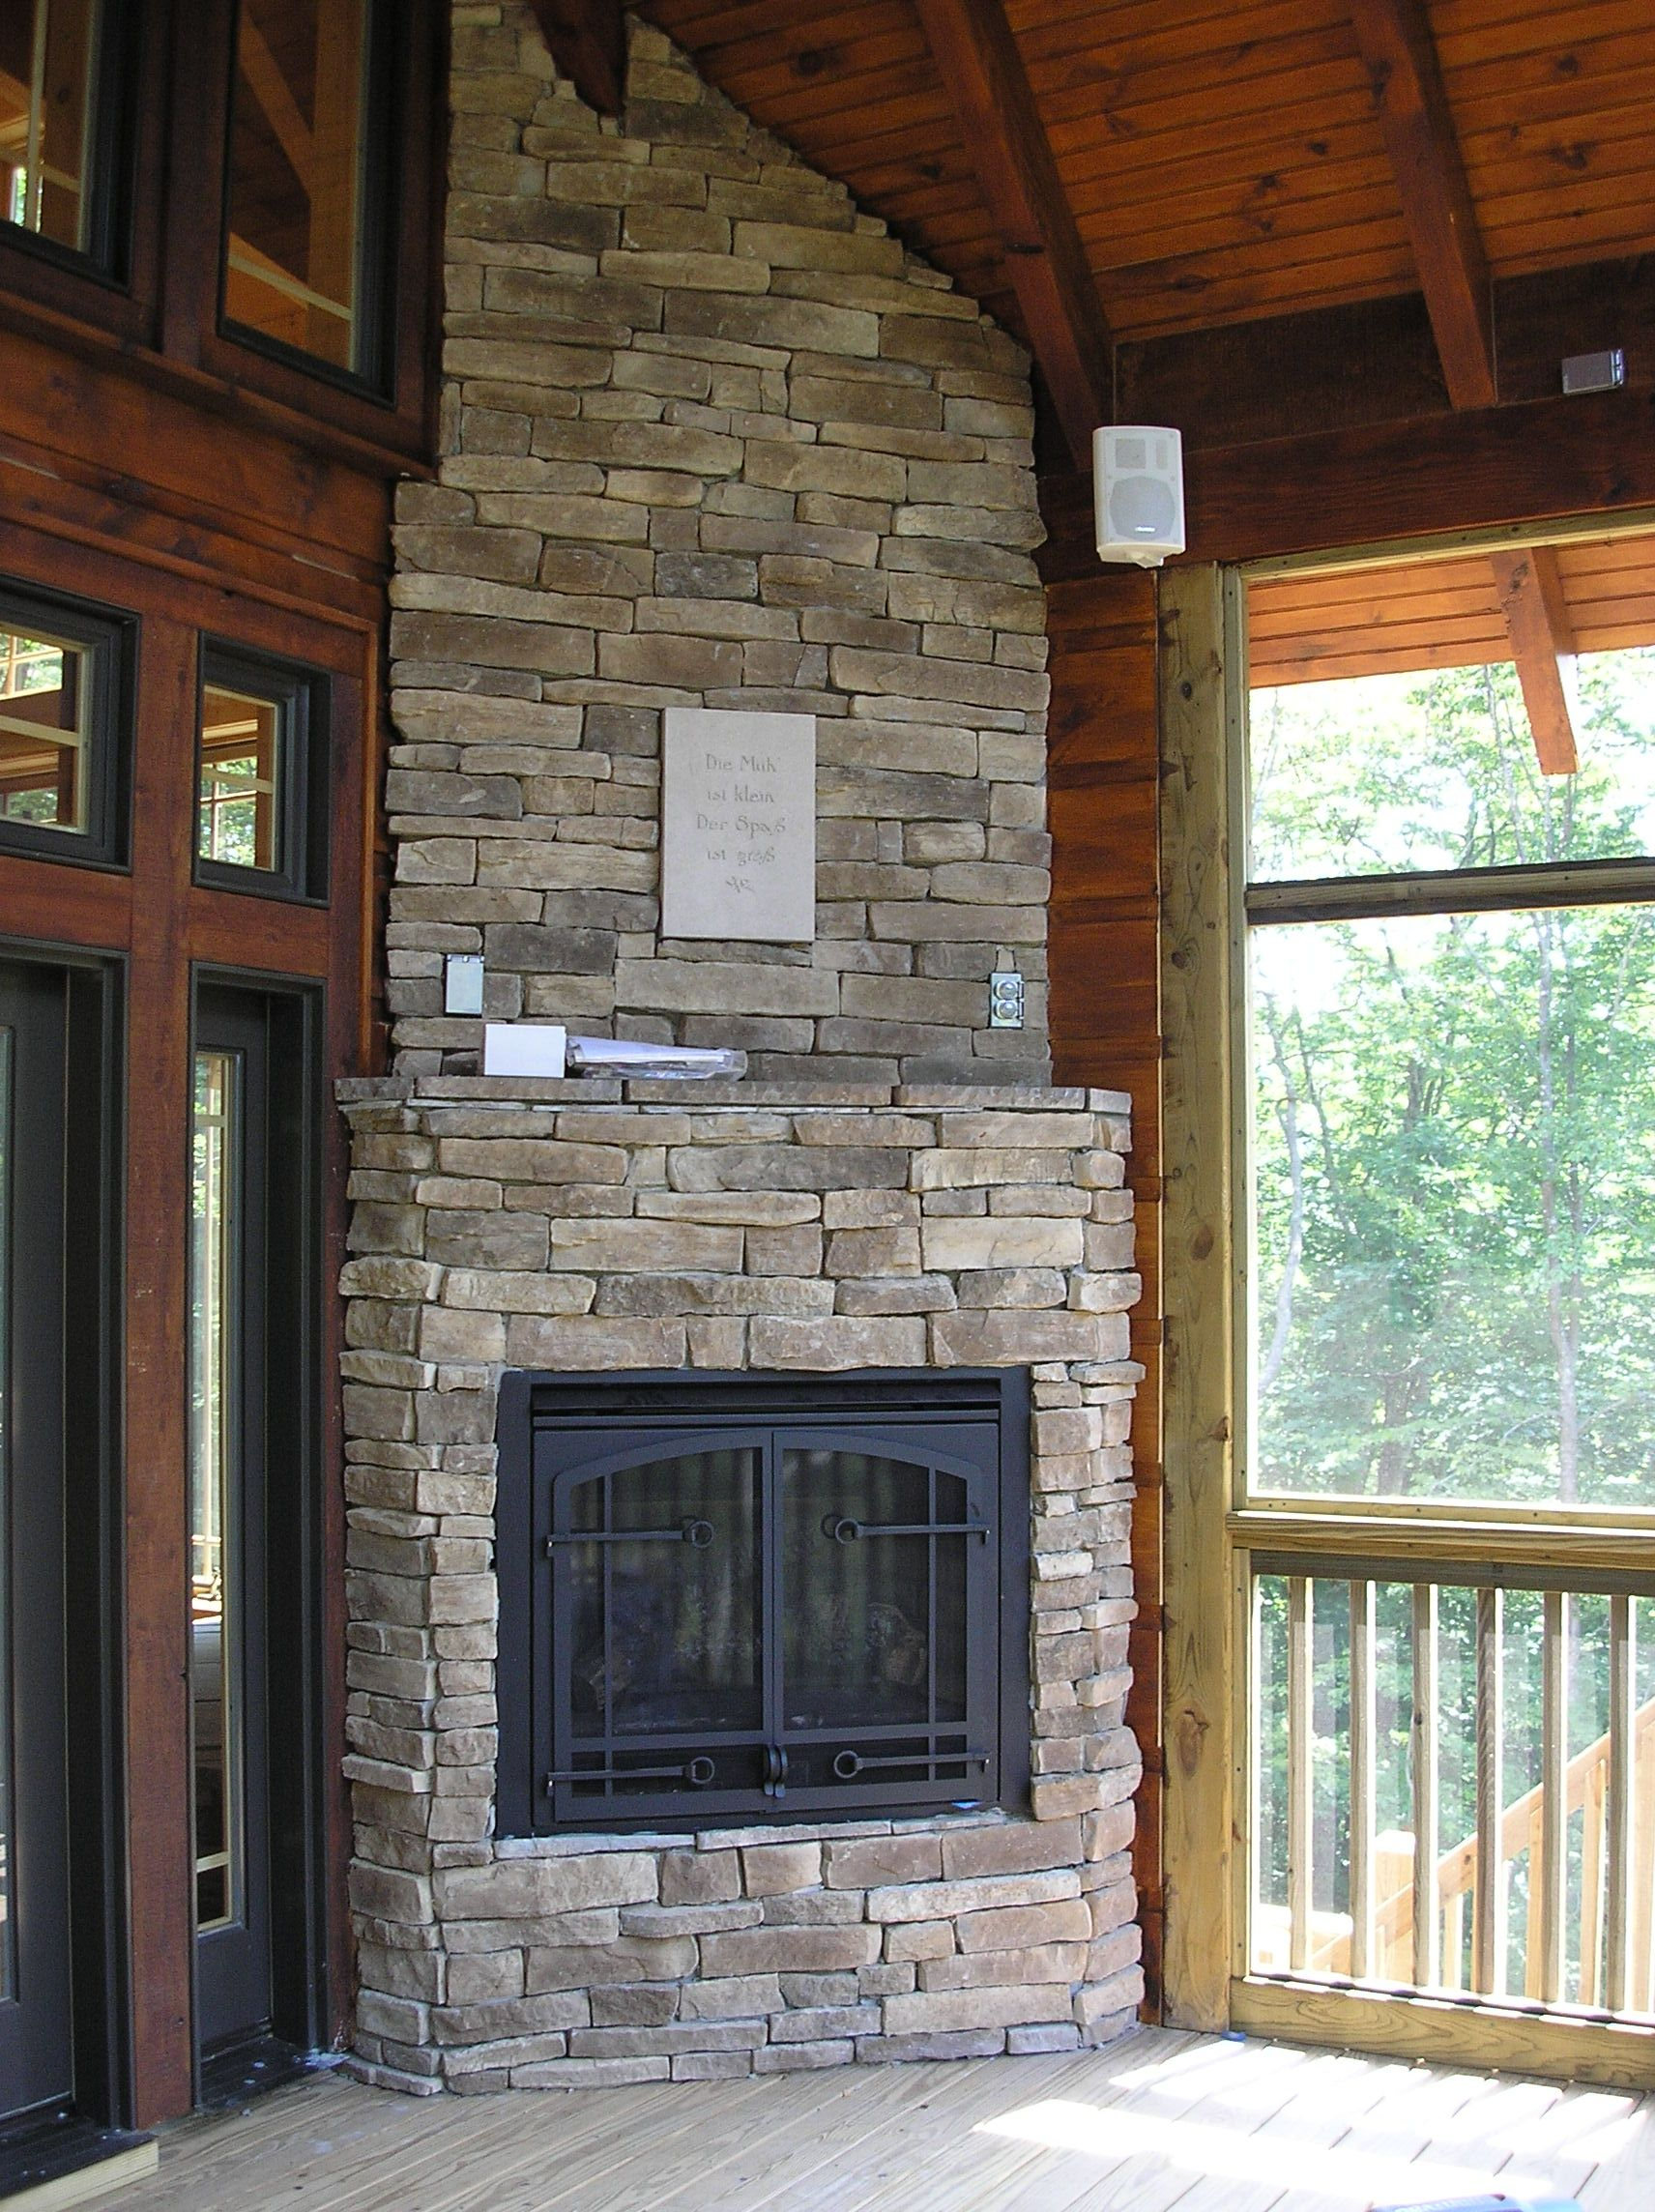 54fdc365cbebff51260f65787f2062ec Top Result 53 Inspirational Outside Stone Fireplace